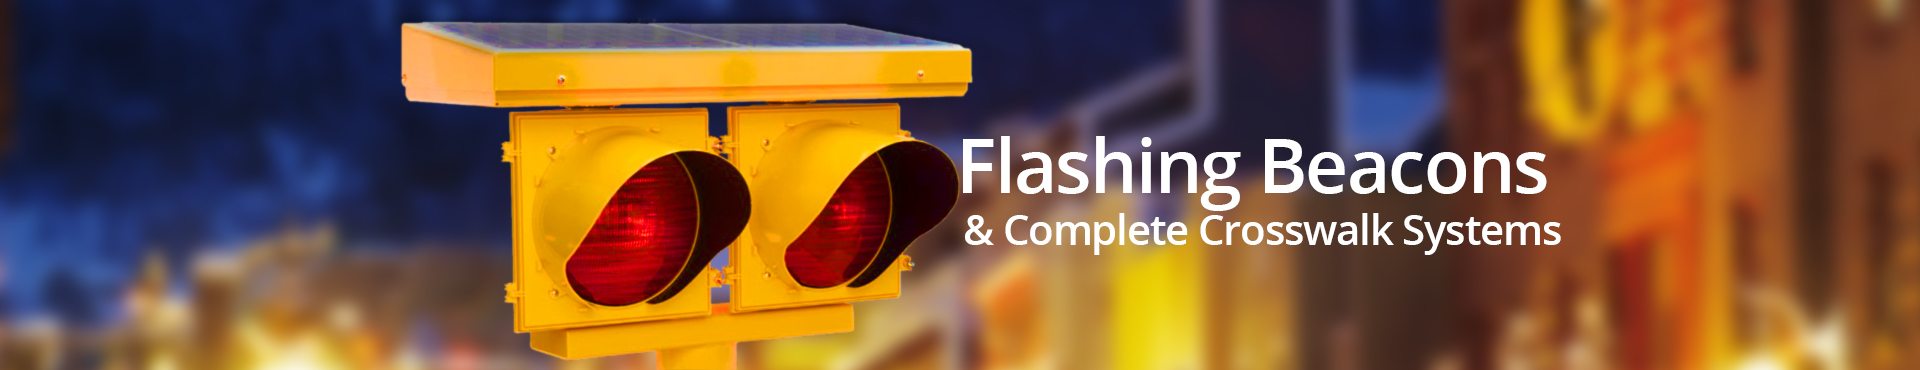 Flashing Beacons And Complete Crosswalk Systems